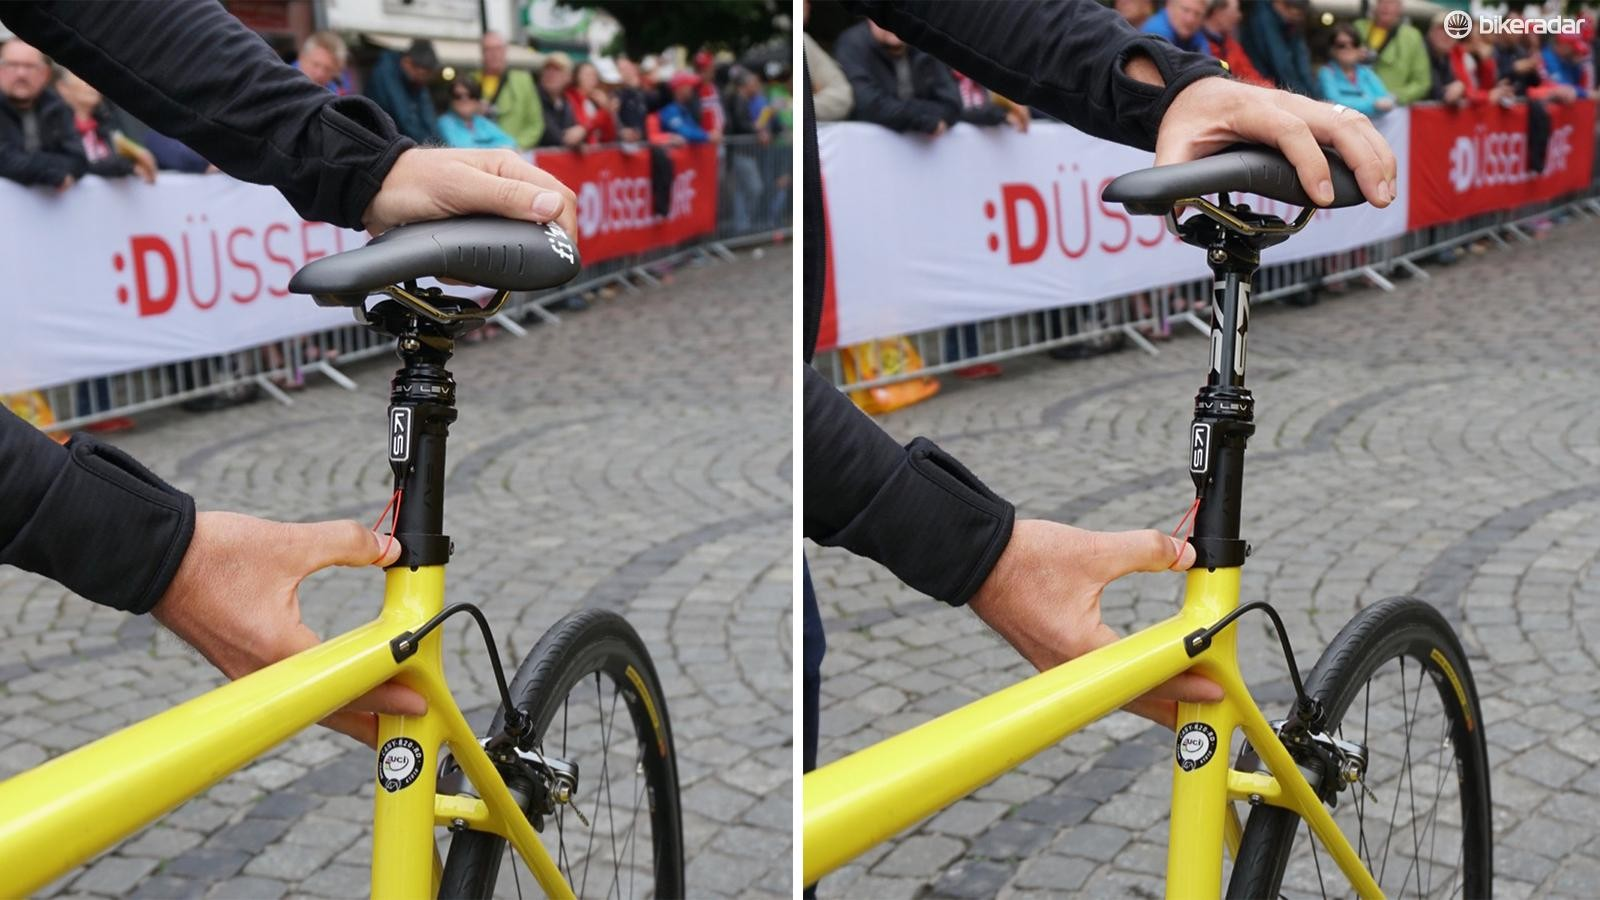 Mavic neutral support bikes have a new, custom dropper post to adjust to rider saddle height on the fly